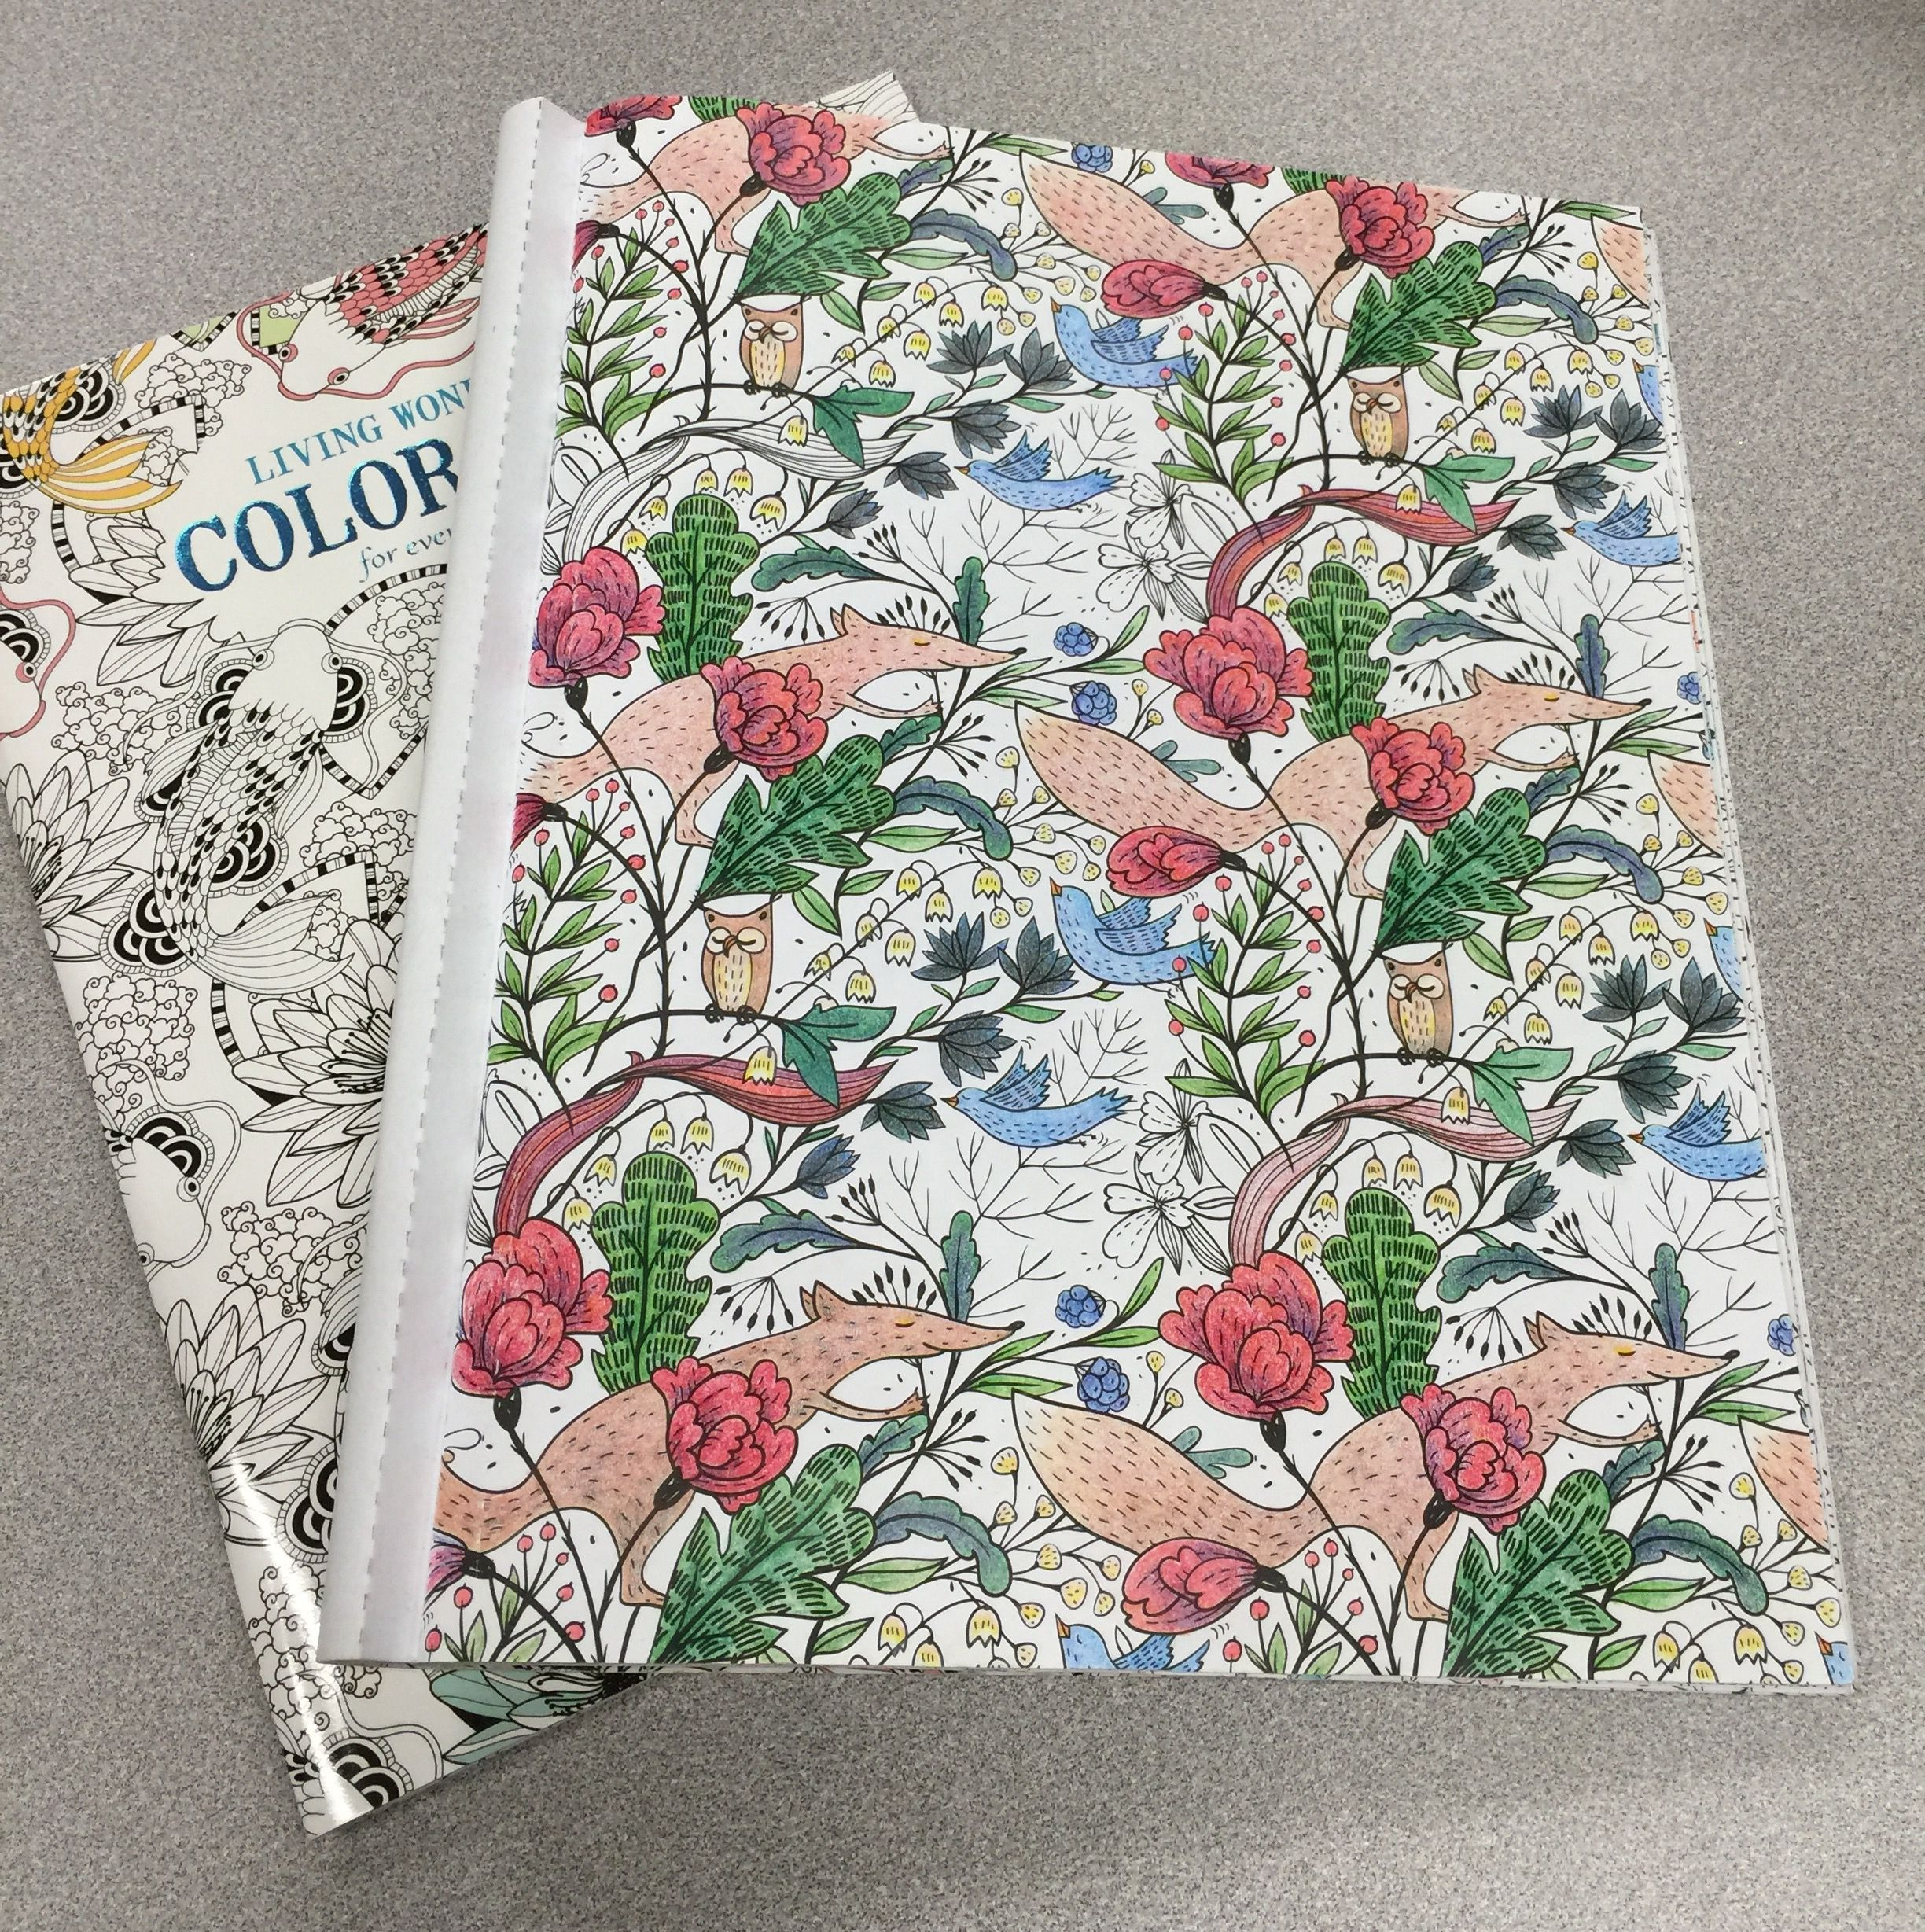 Color art floral wonders - Trying To Complete Some Pages Out Of My Various Books I Nicknamed This Page Woodland Creatures It S From Living Wonders Color Art For Everyone